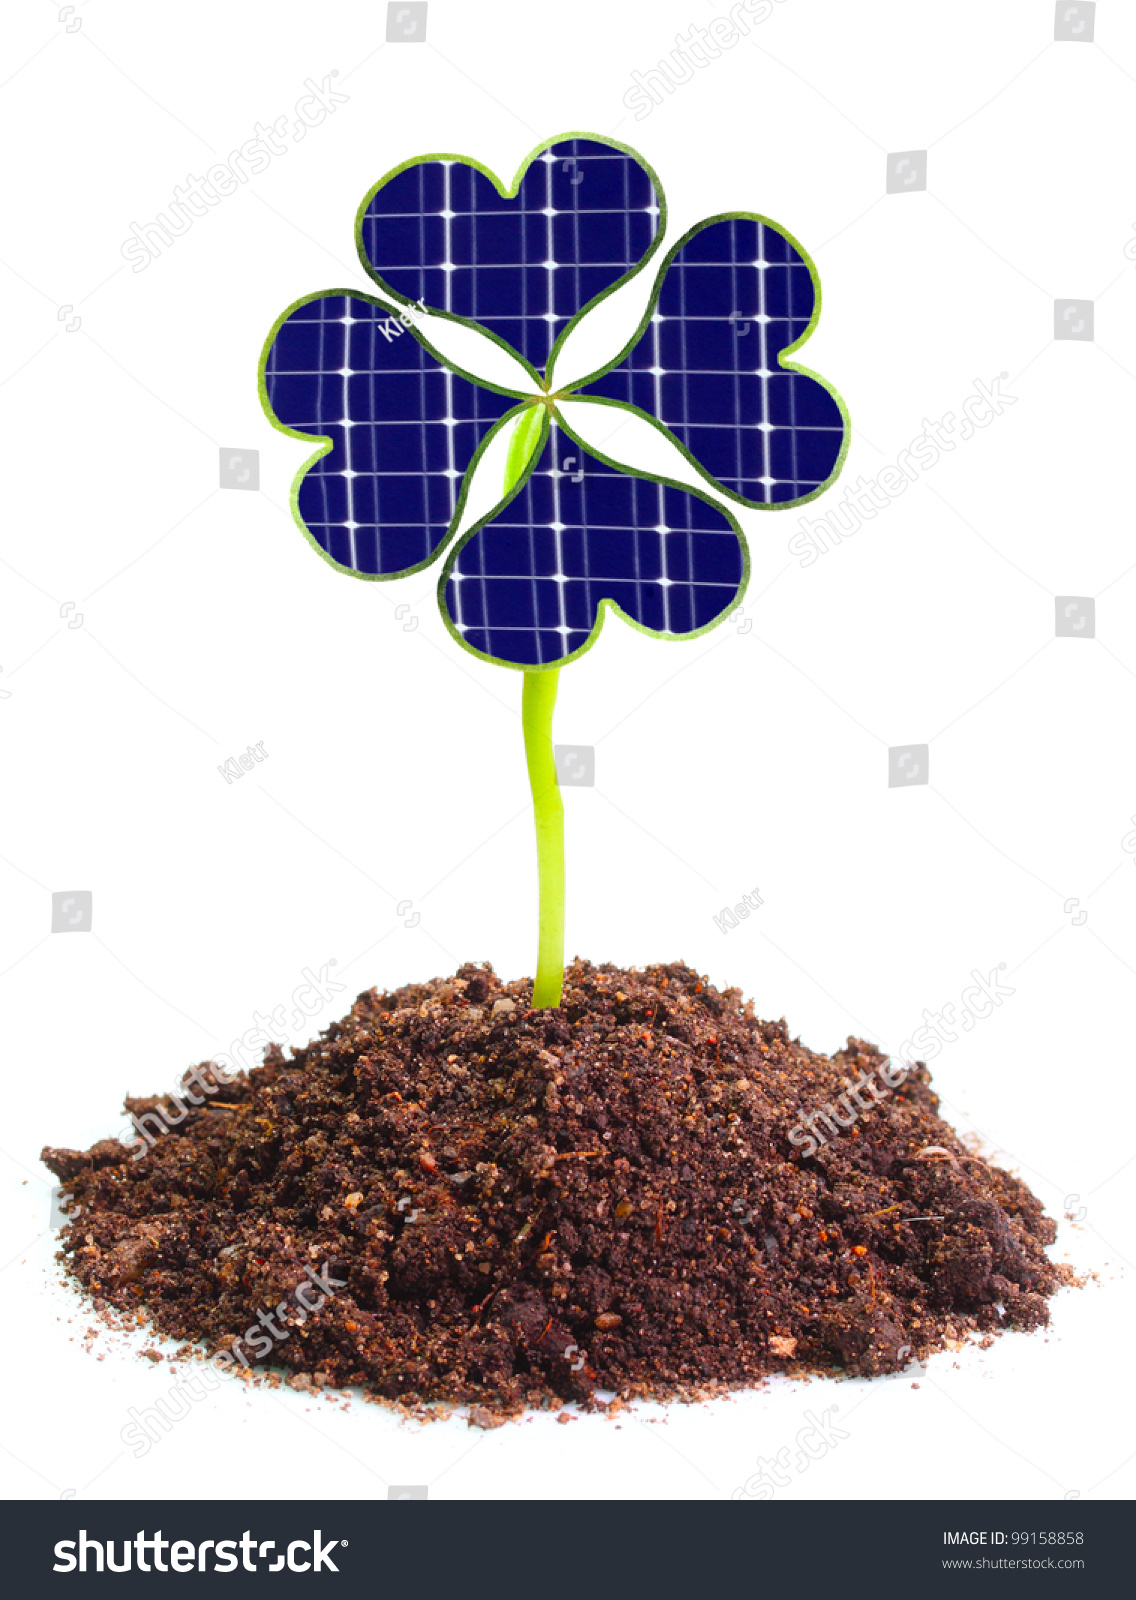 Solar energy panels from clover leaves Environmental protection concept